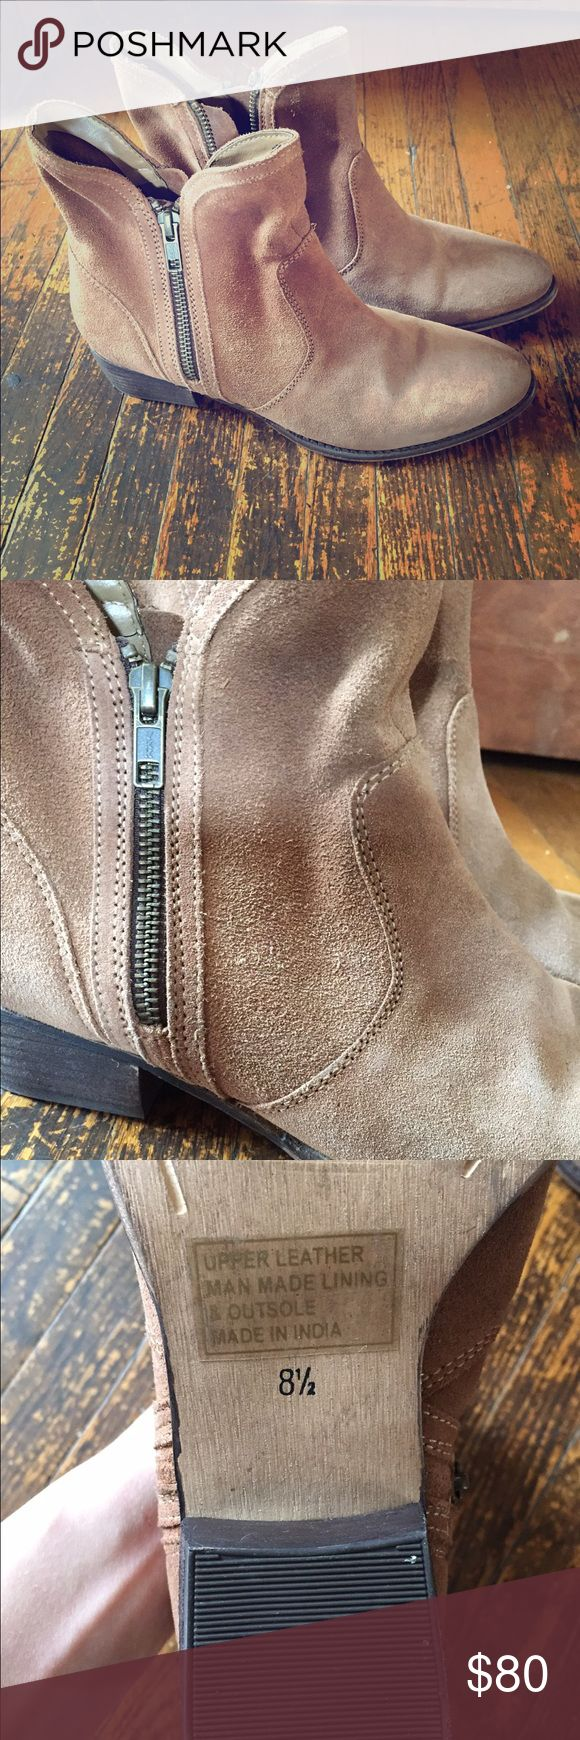 Seychelles Boots 8.5 Super beautiful. Never worn. Open to offers! Seychelles Shoes Ankle Boots & Booties